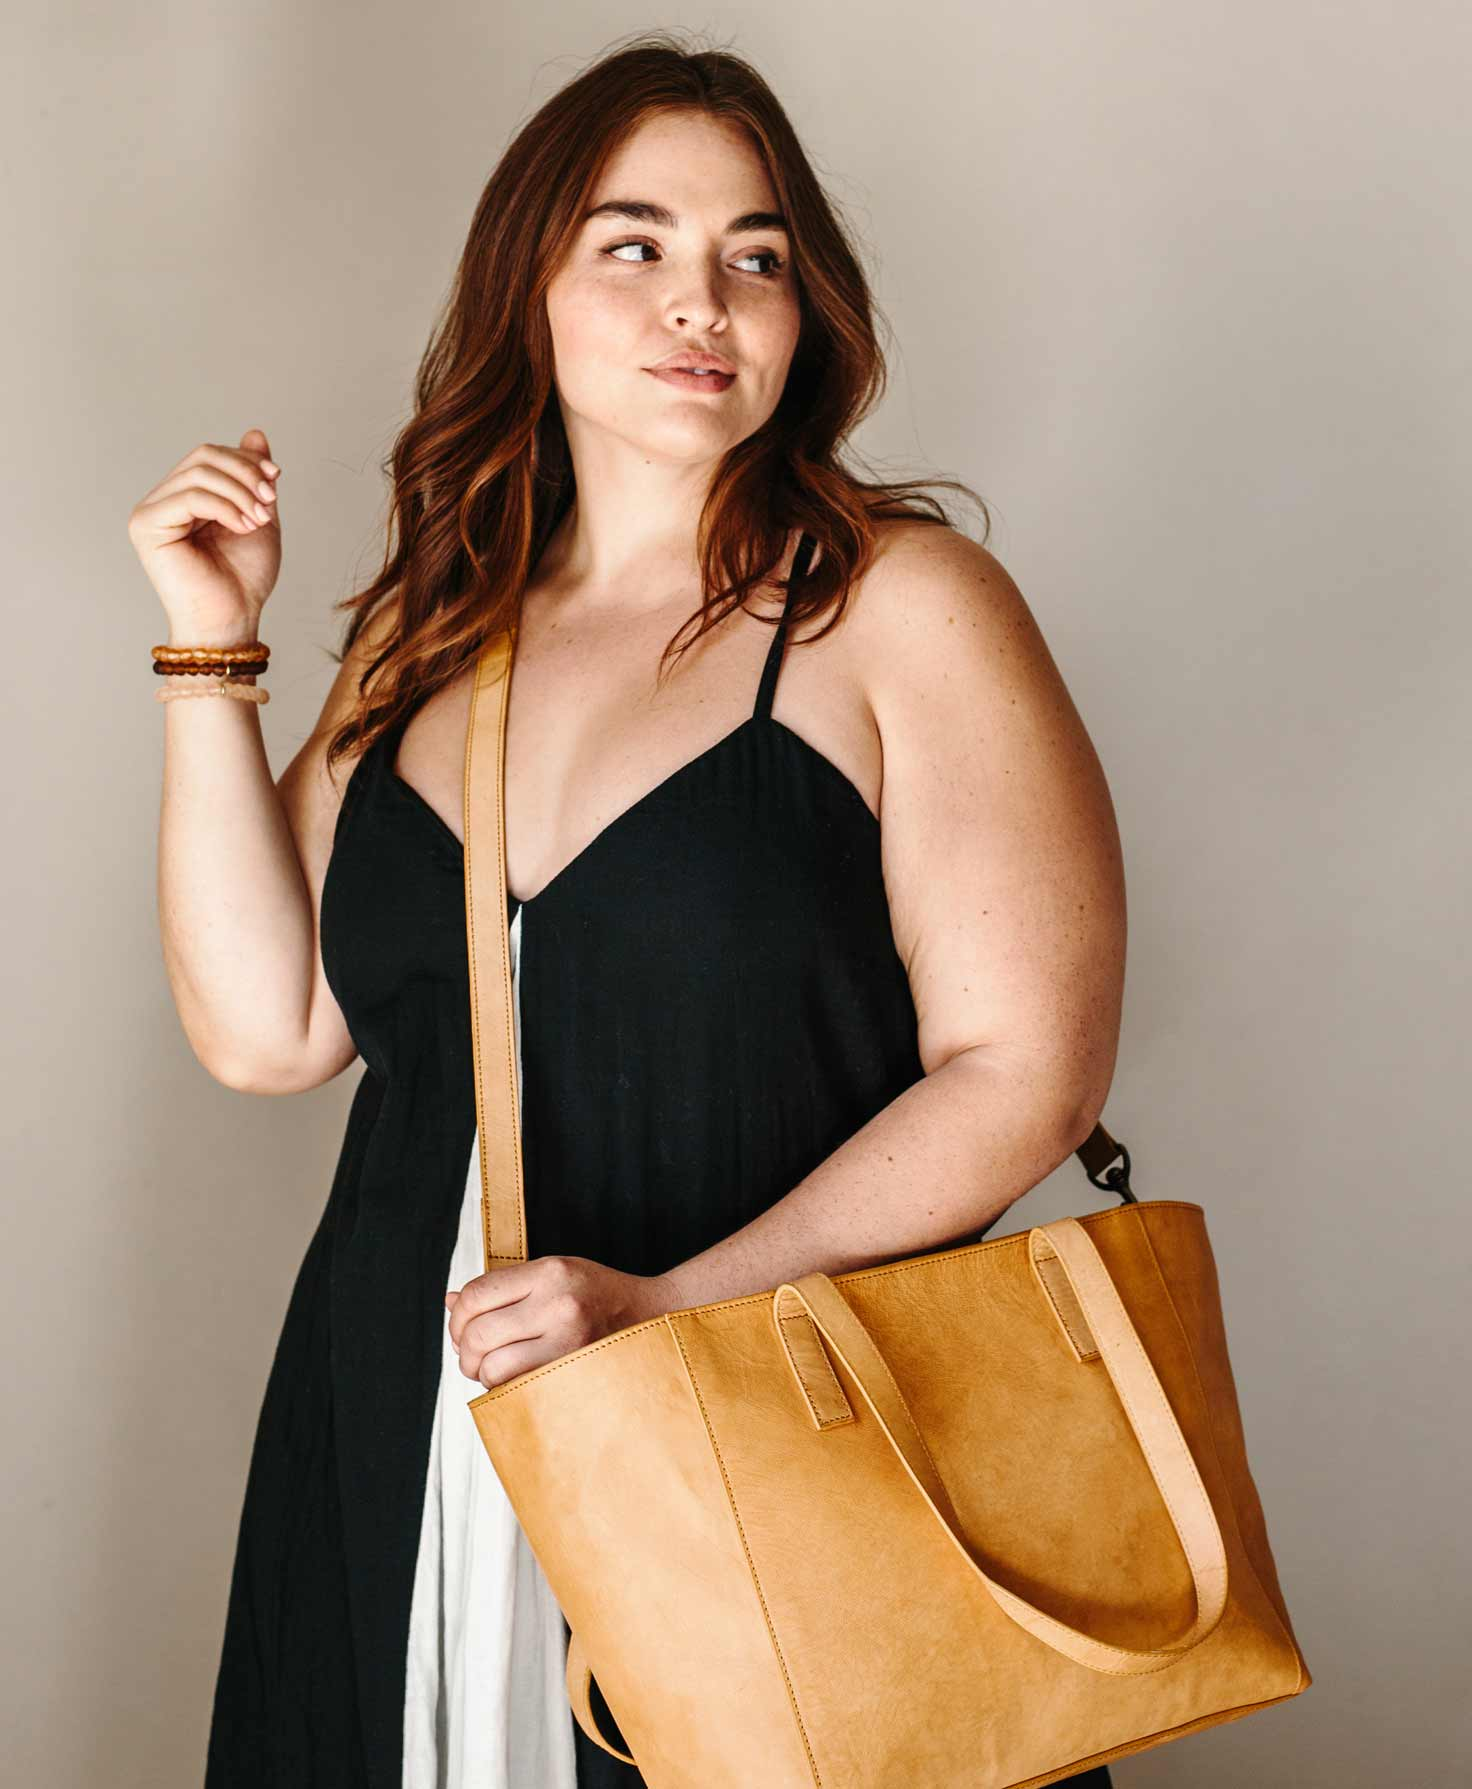 A model wears the City Tote with its long strap attached for a crossbody style. It hangs down just below her hip.